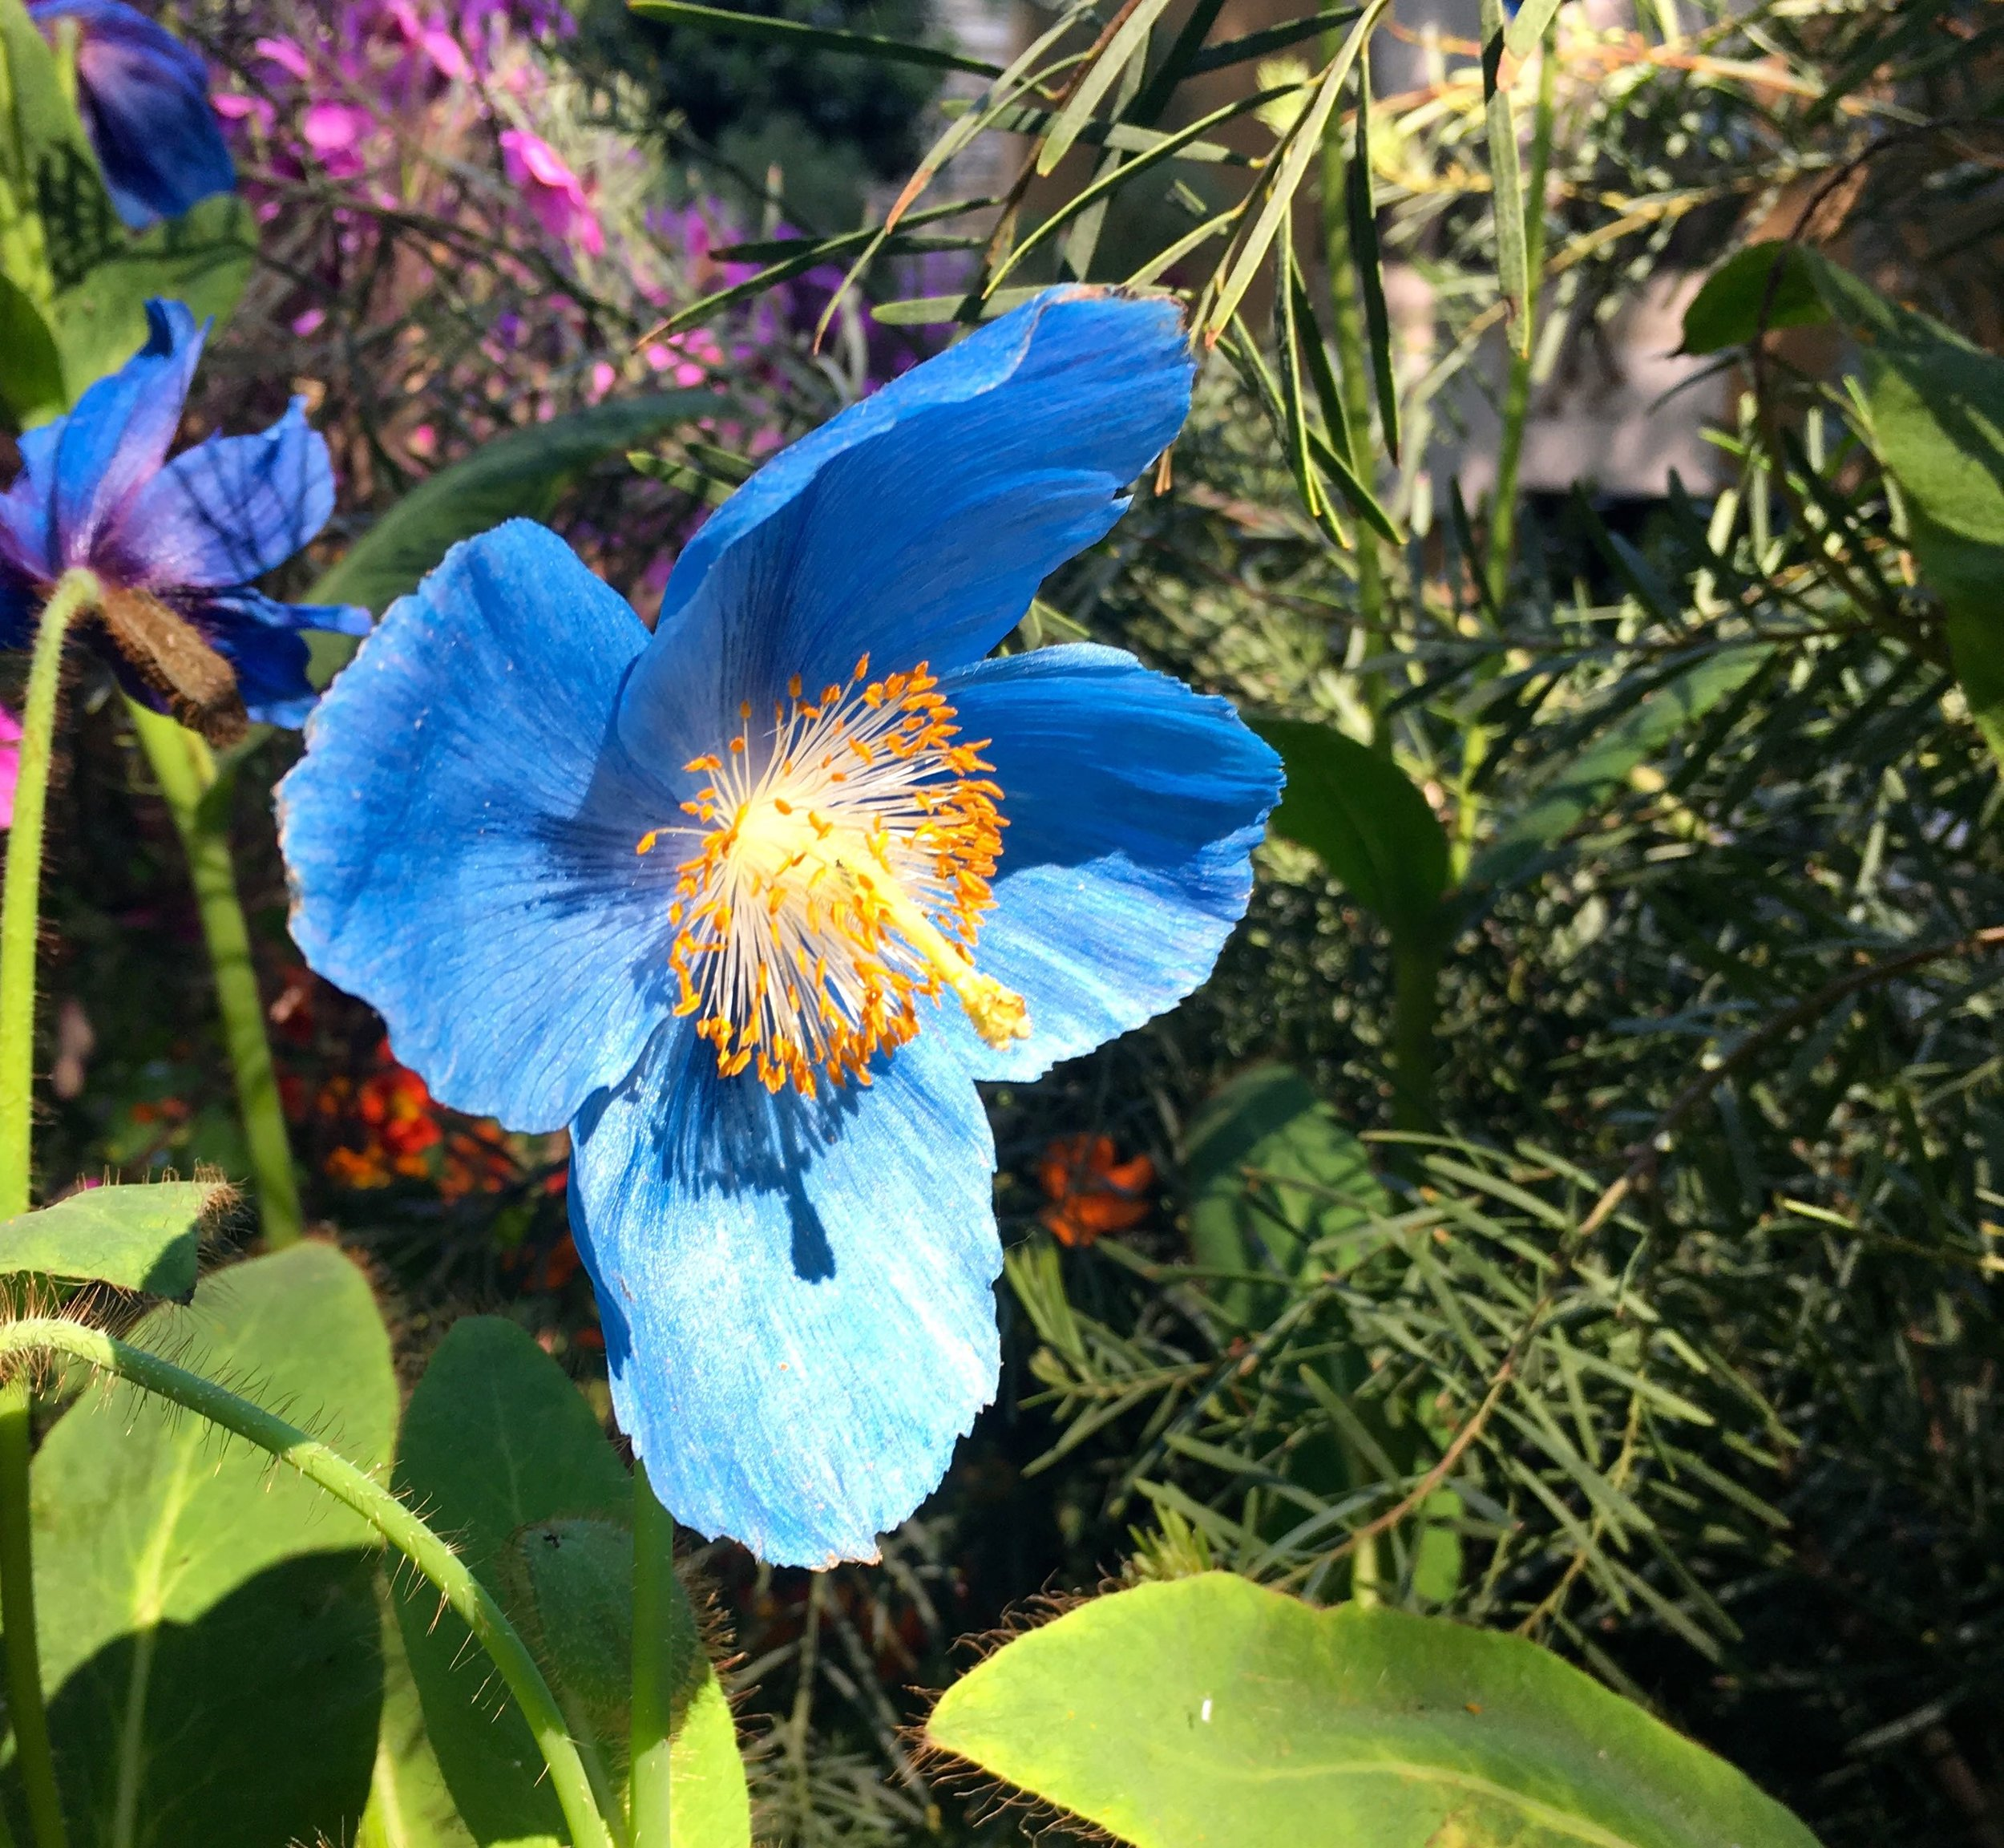 blue Mecanopsis or Himalayan poppies in the British Council garden